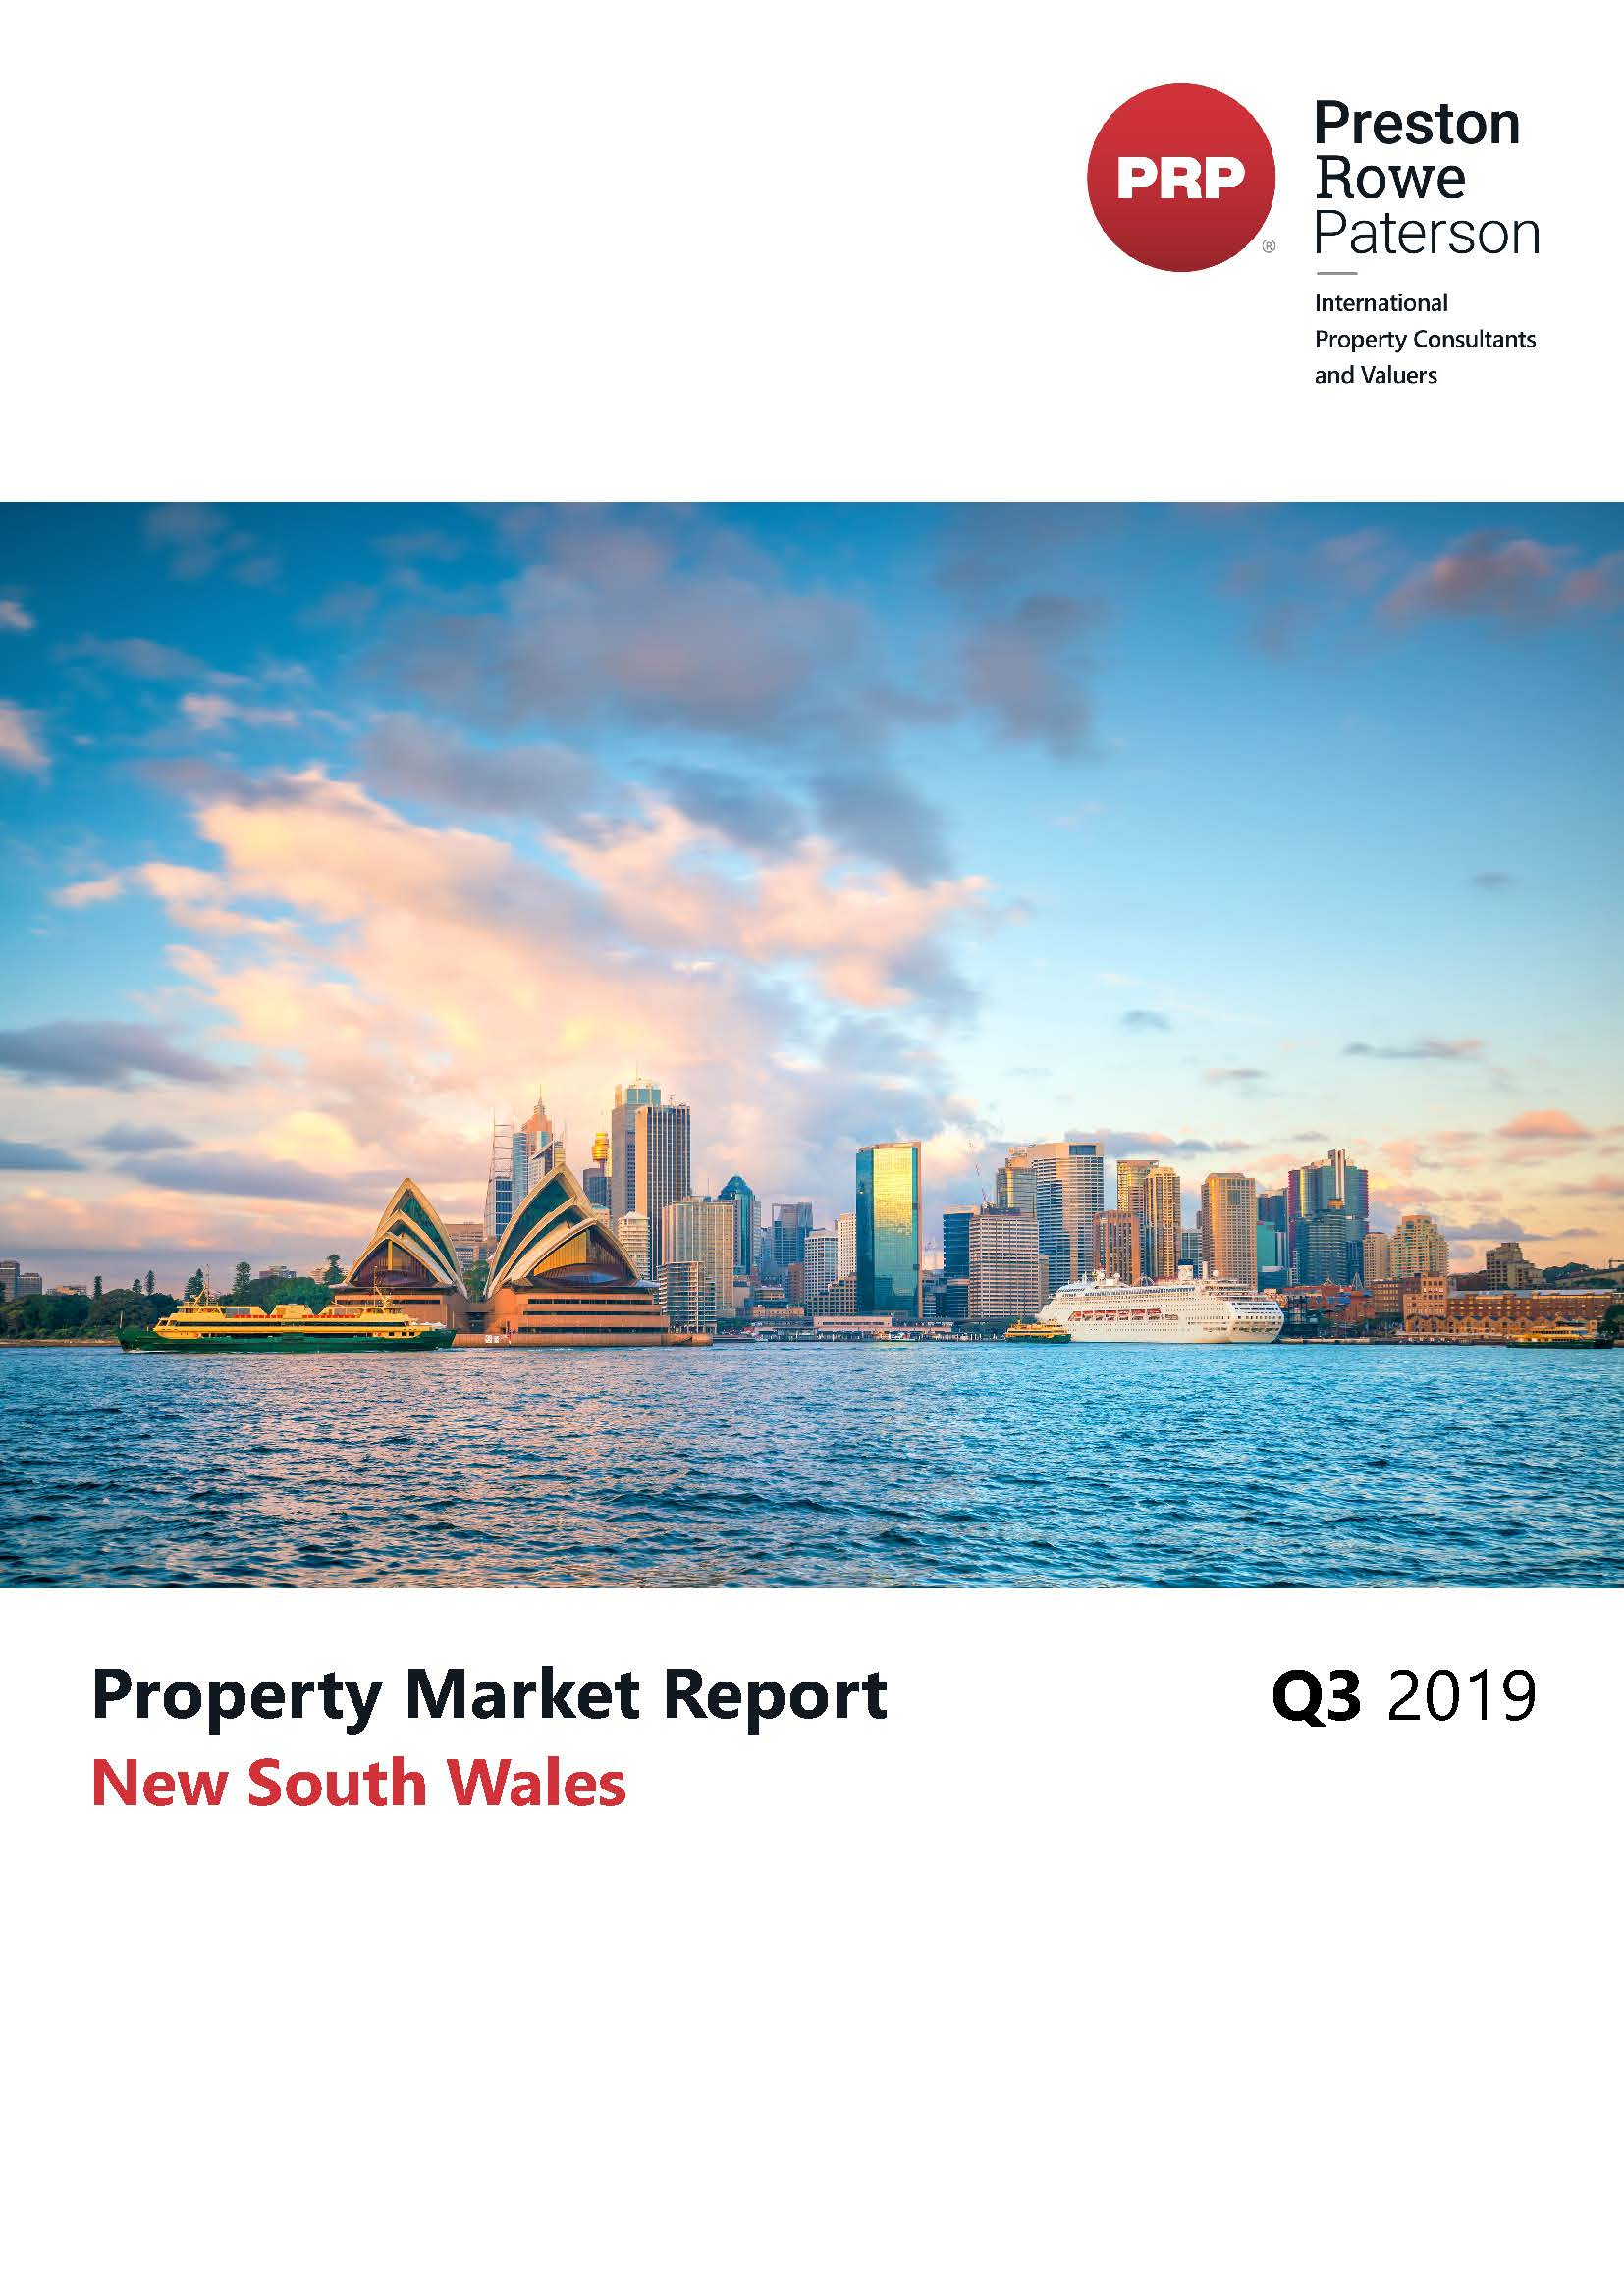 NSW Property Market Report Q3 2019